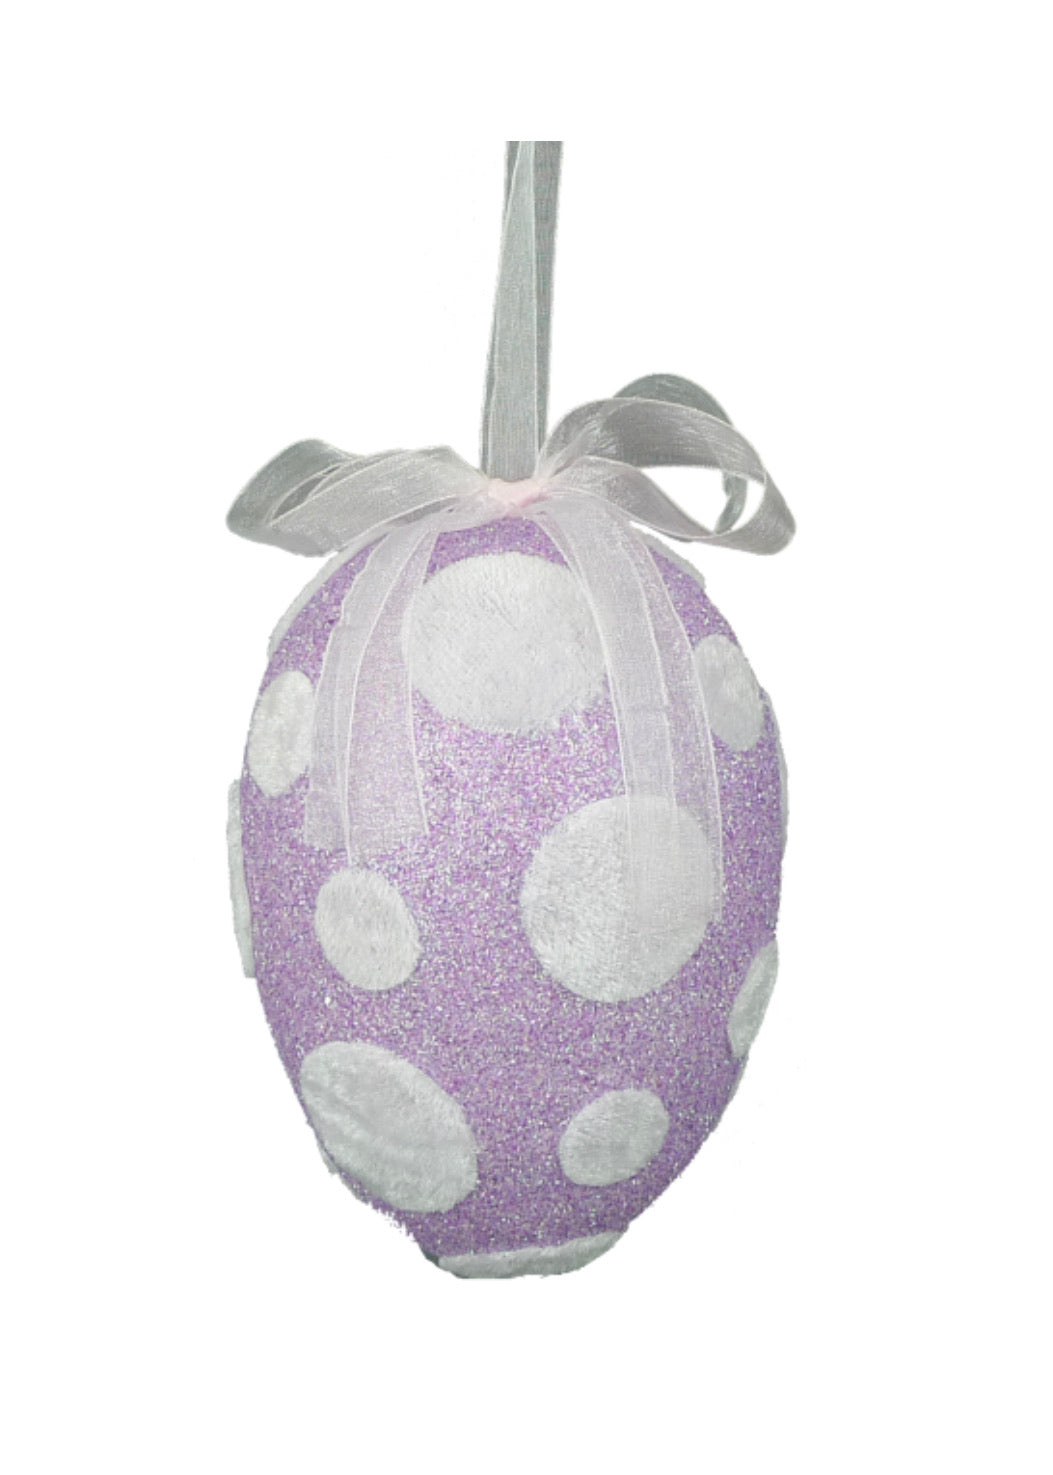 Polka dot egg ornament